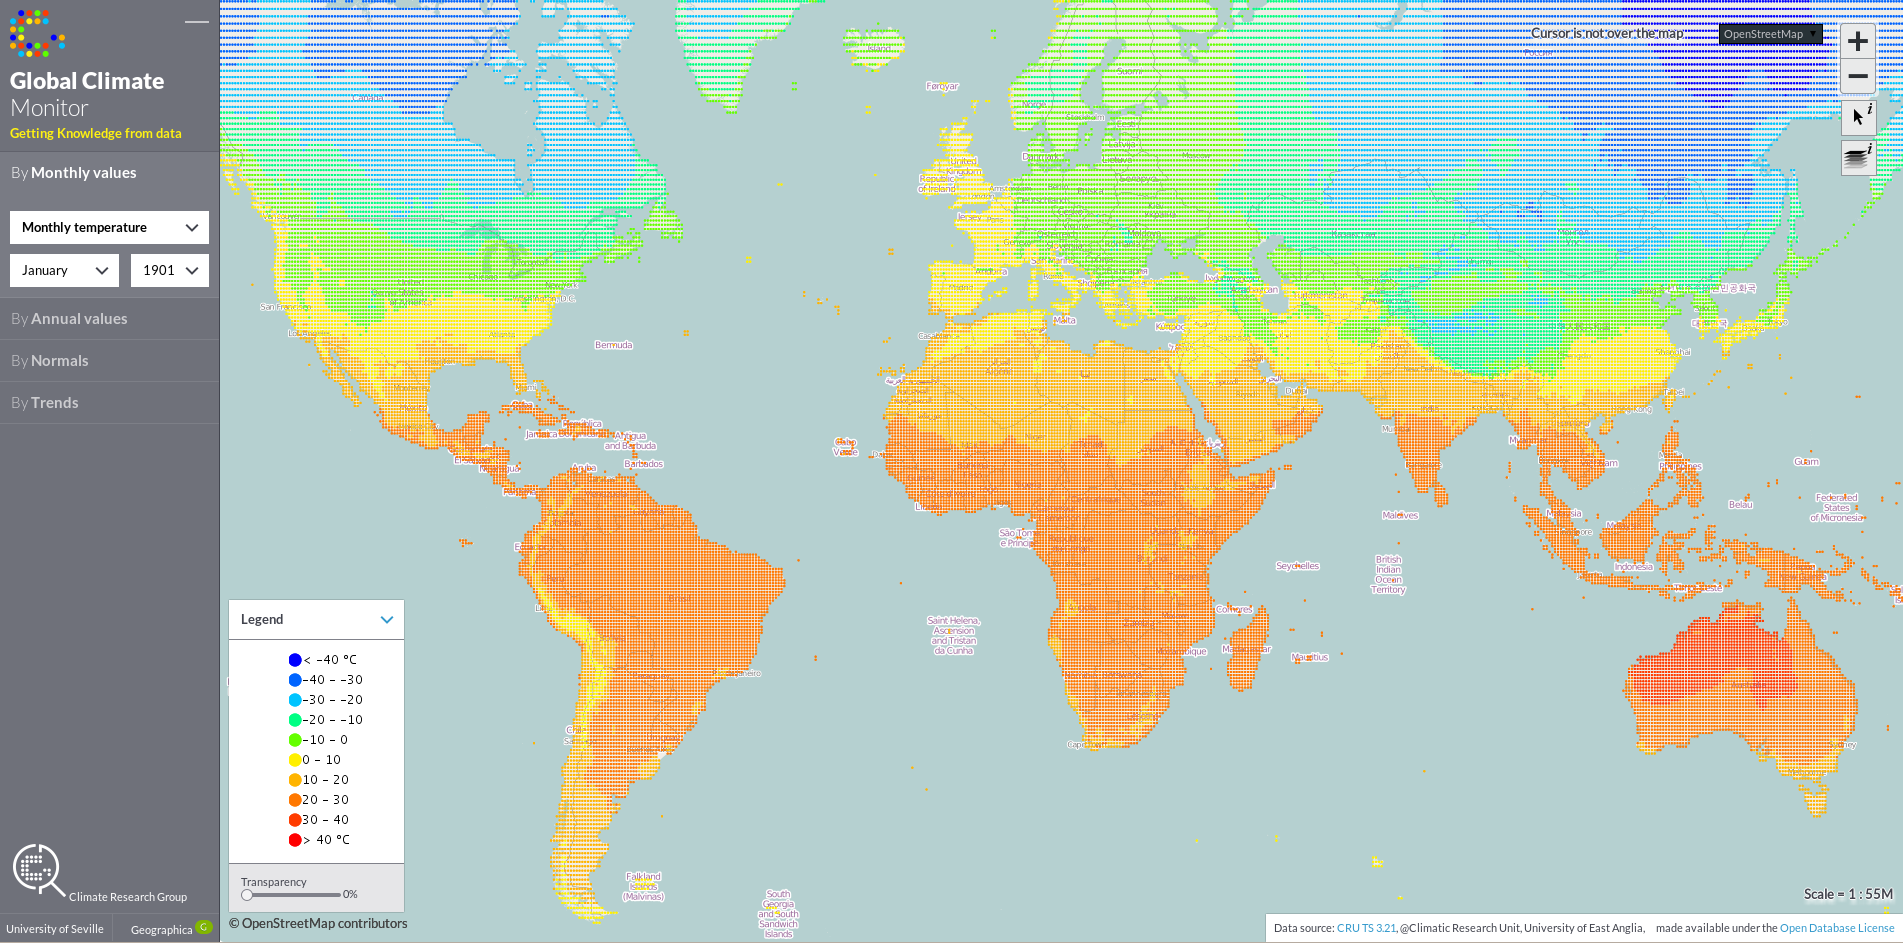 Global Climate Monitor - Monthly Temperature - January 1901